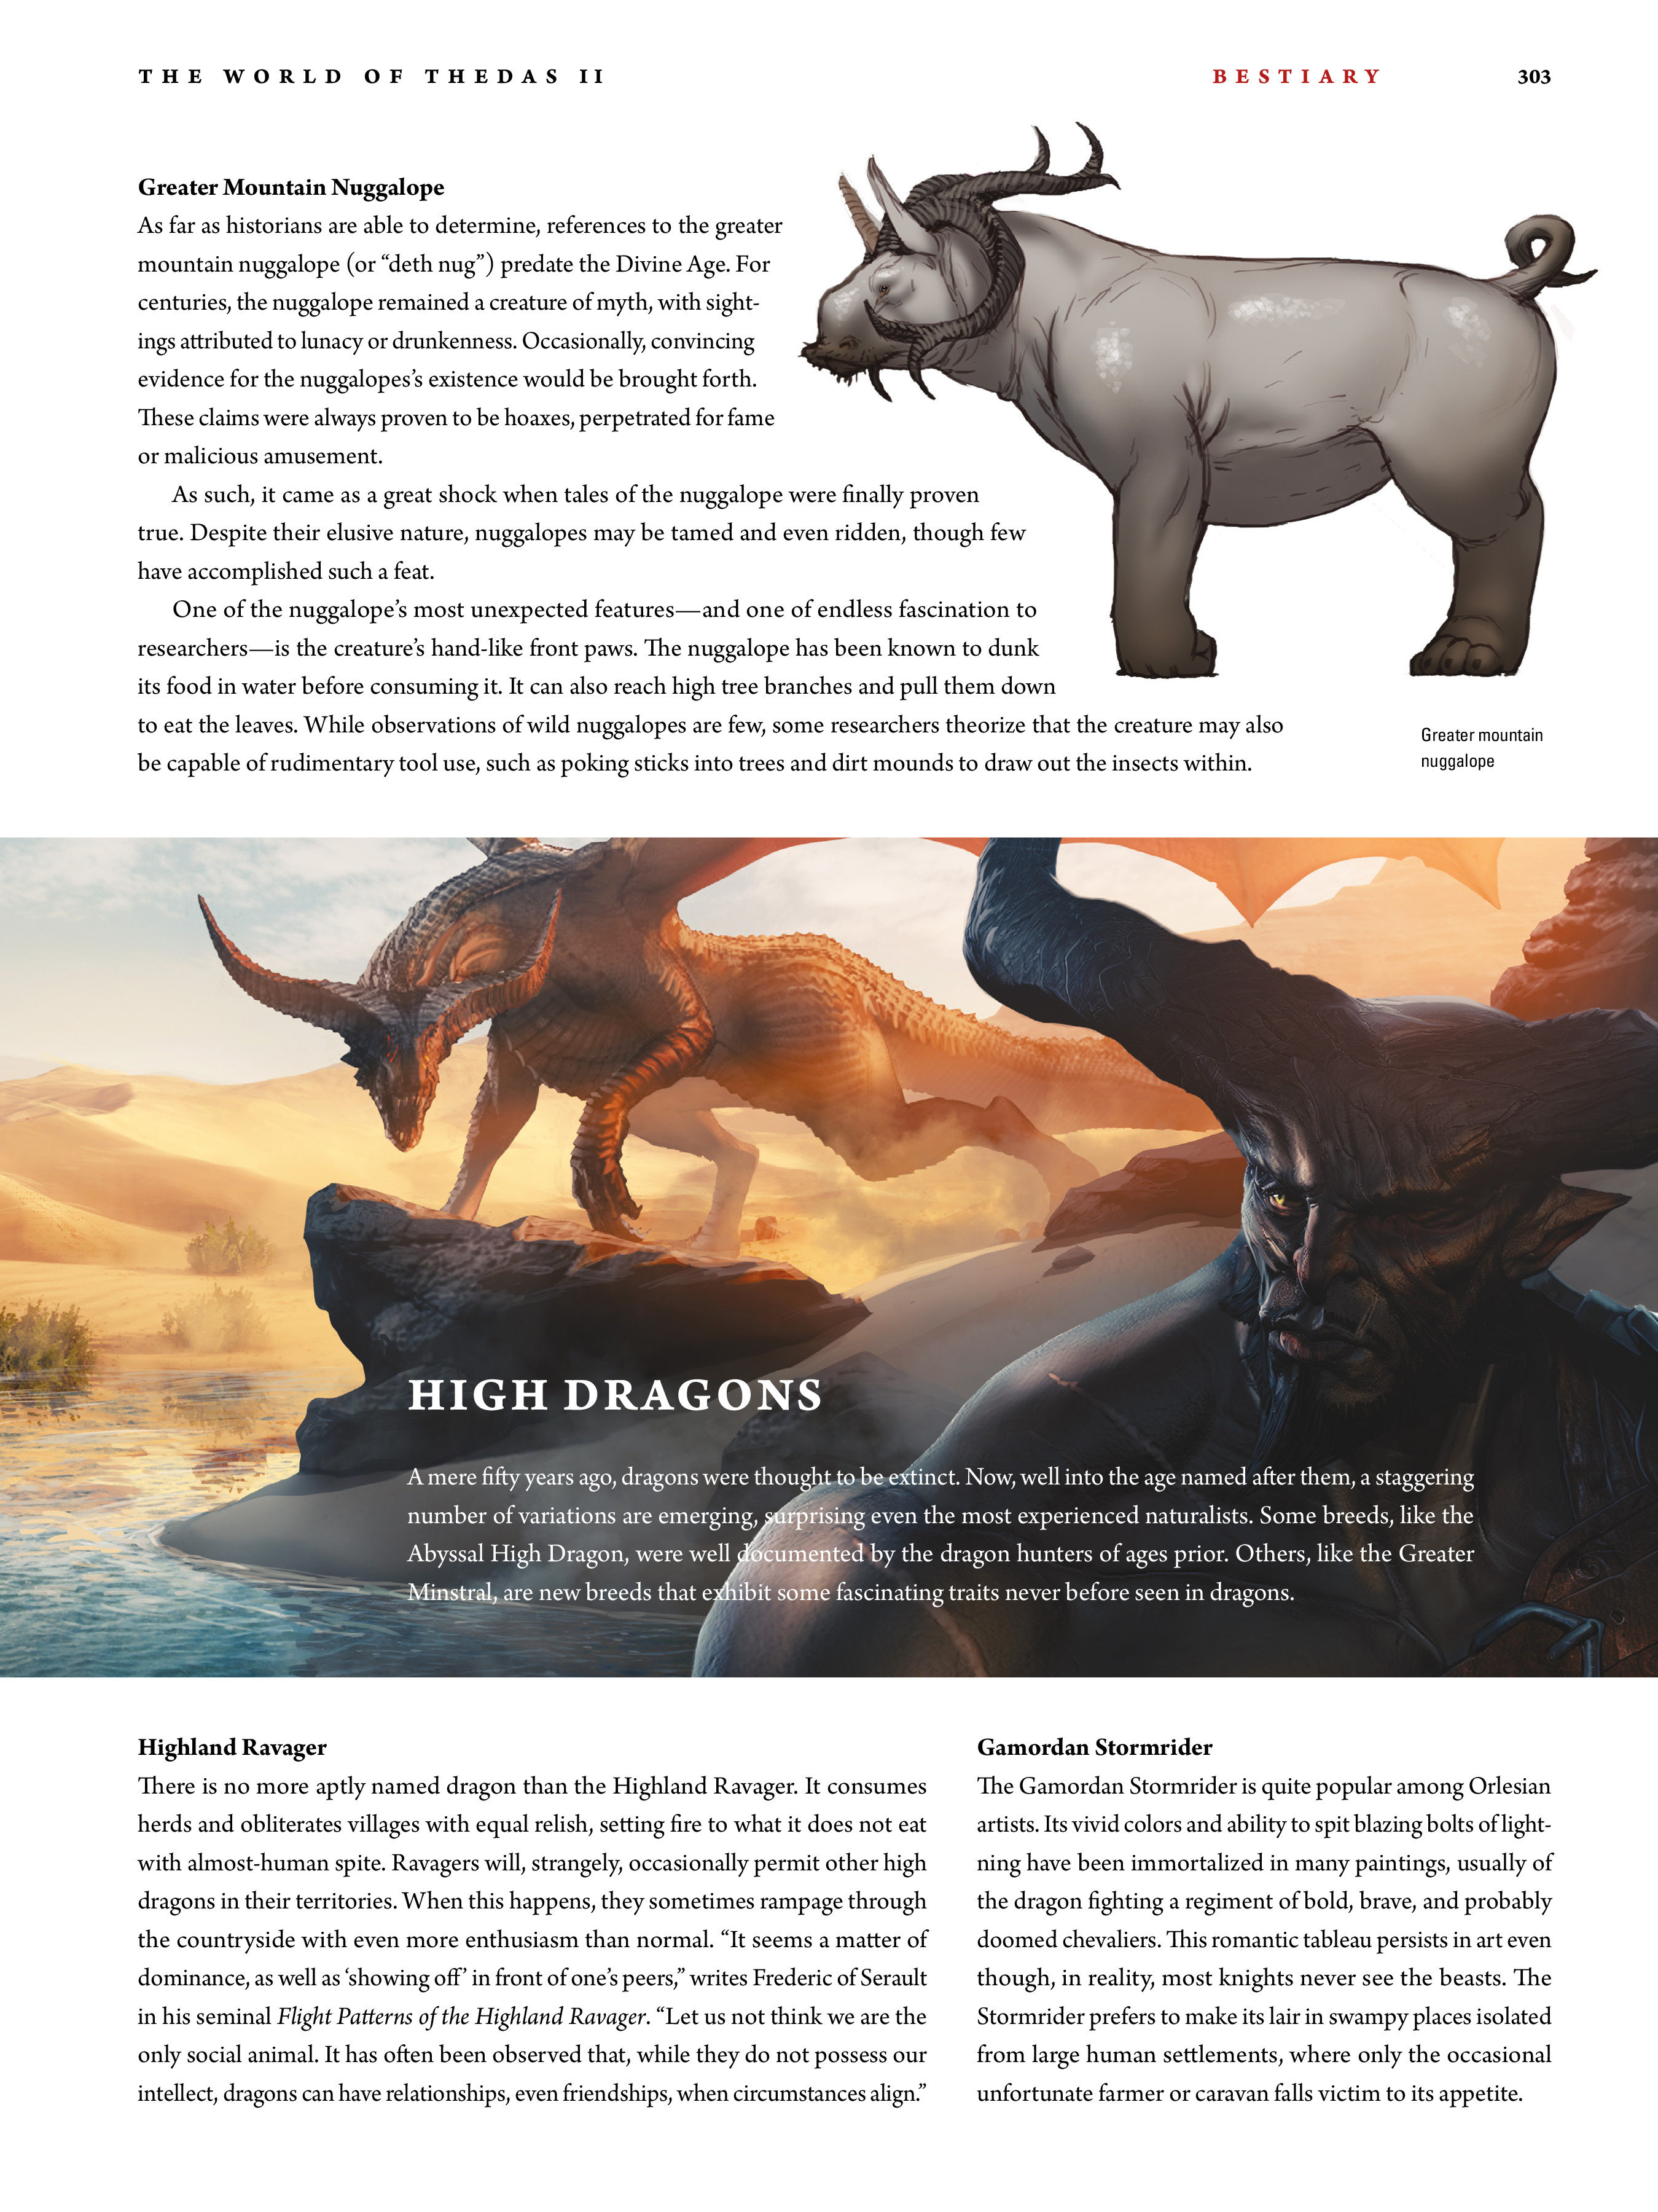 Read online Dragon Age: The World of Thedas comic -  Issue # TPB 2 - 294